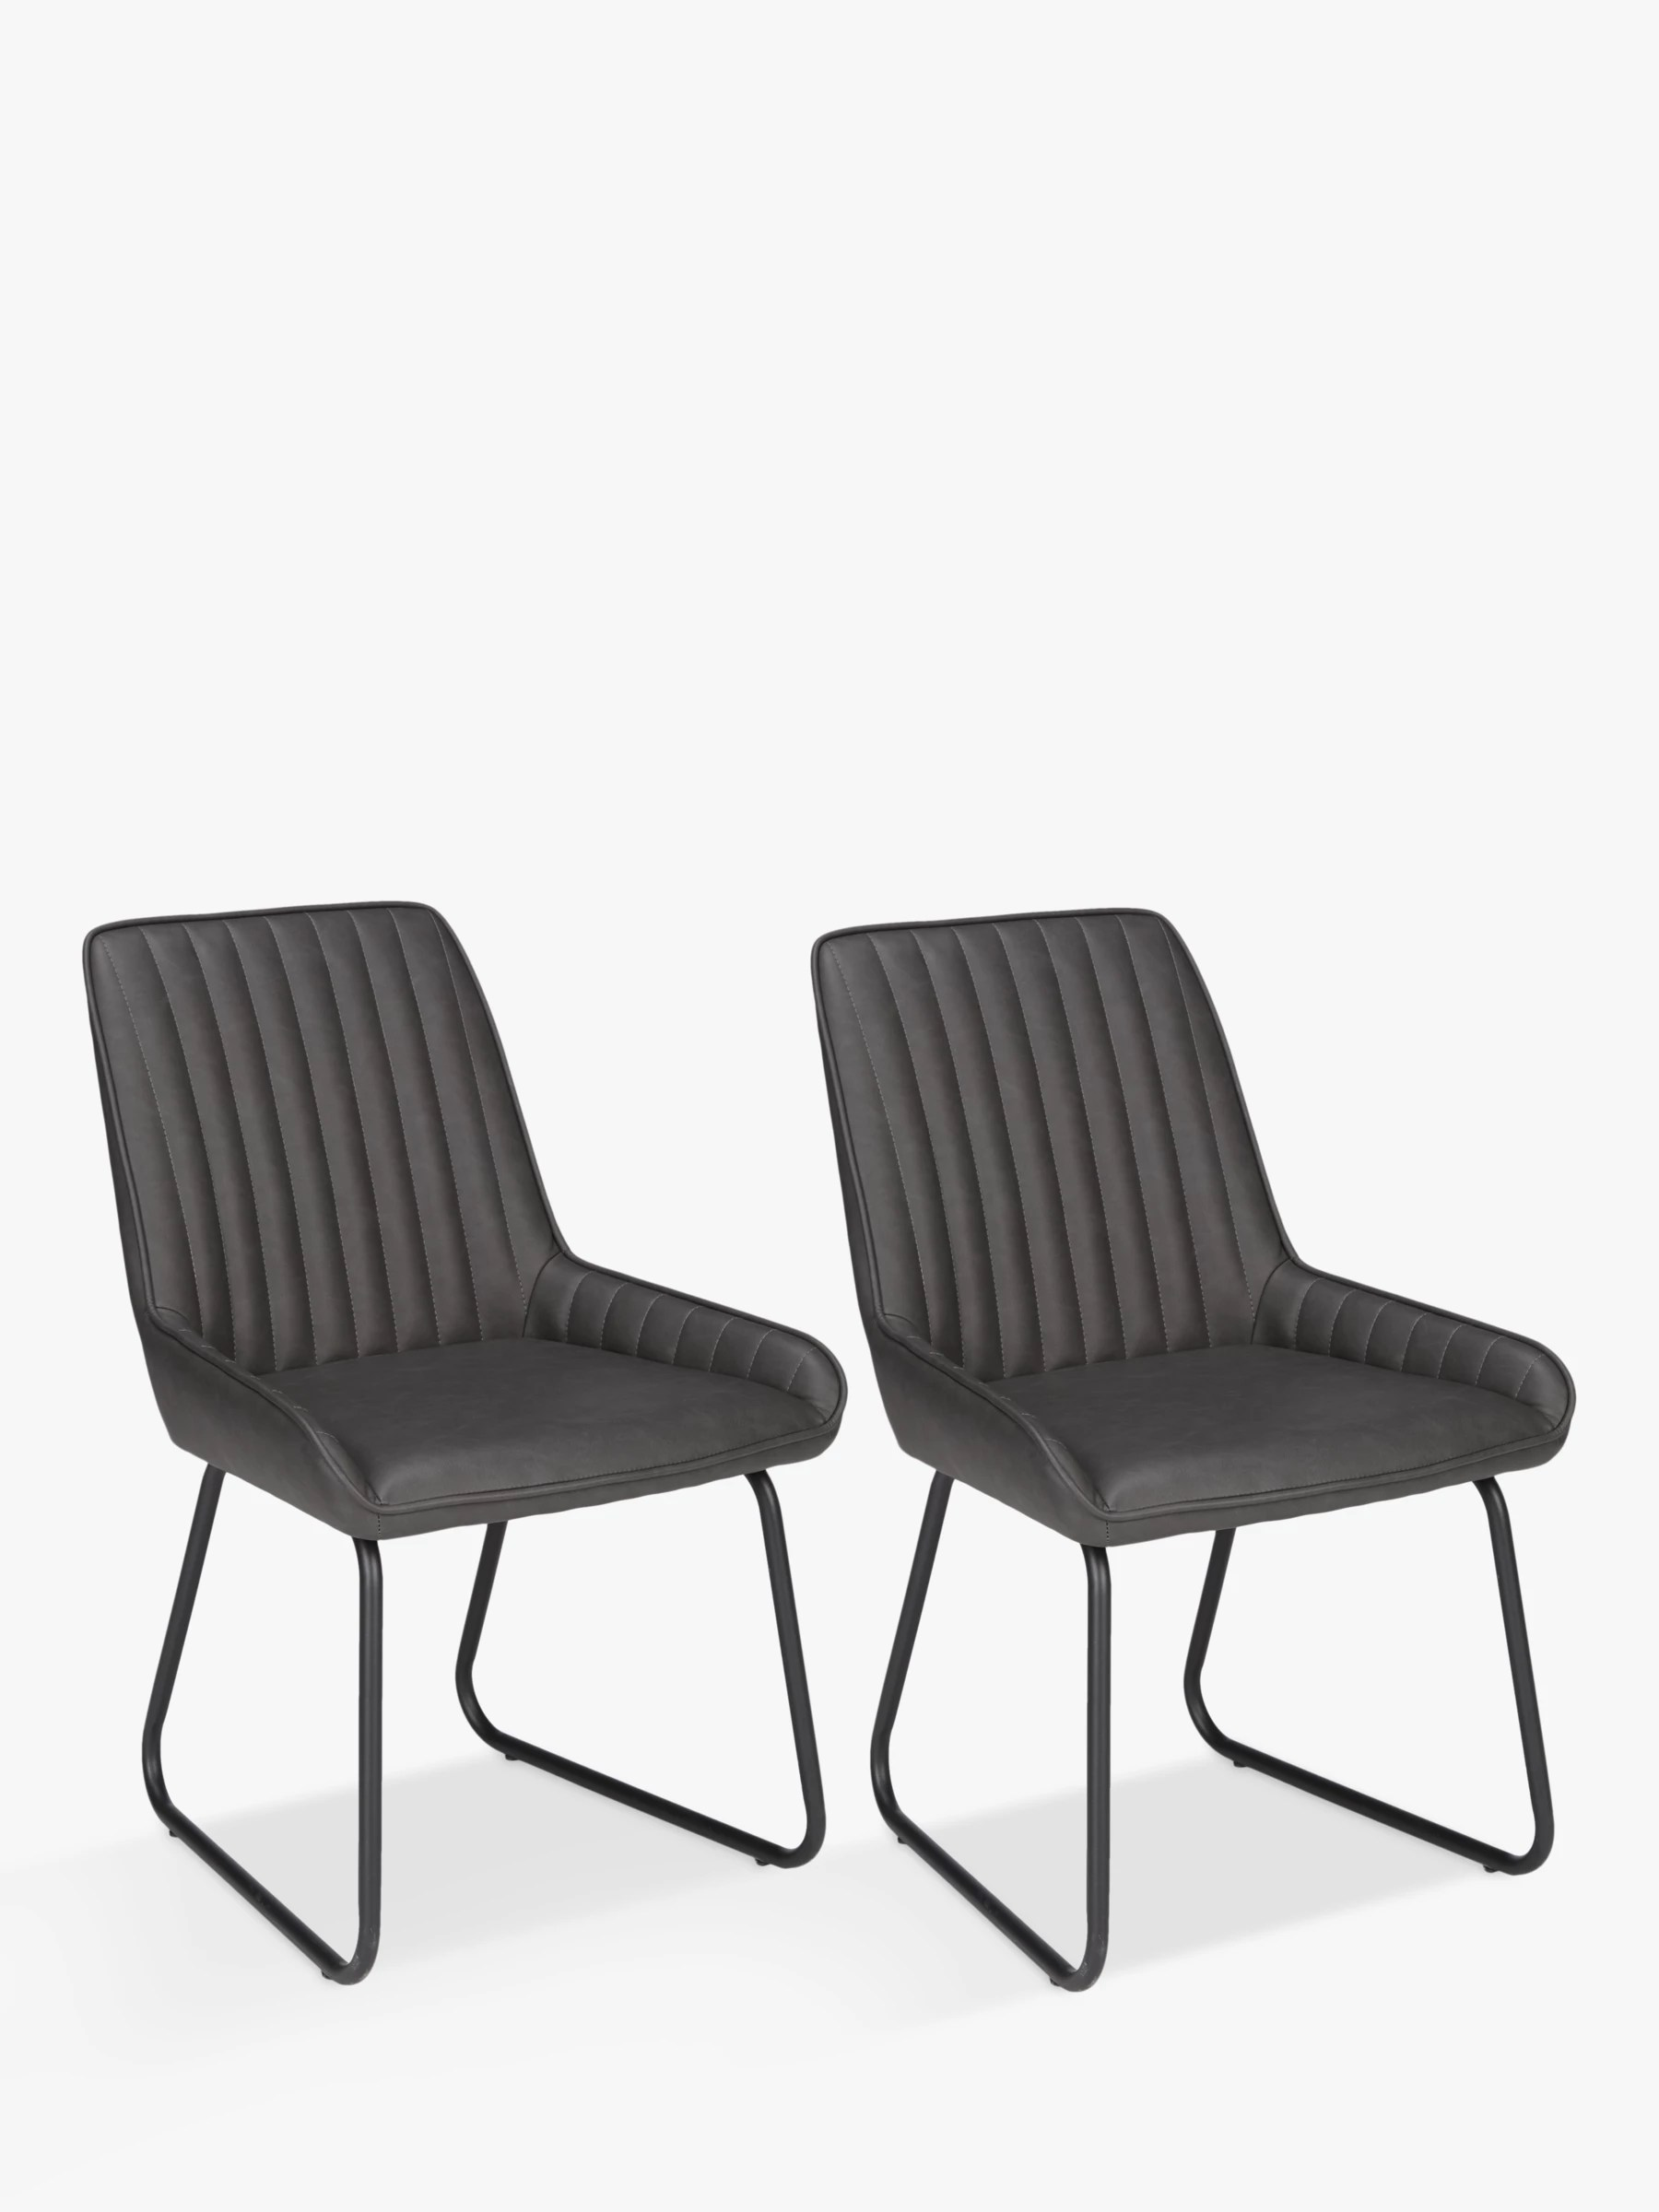 Buy John Lewis Brooks Side Dining Chairs, Set of 2